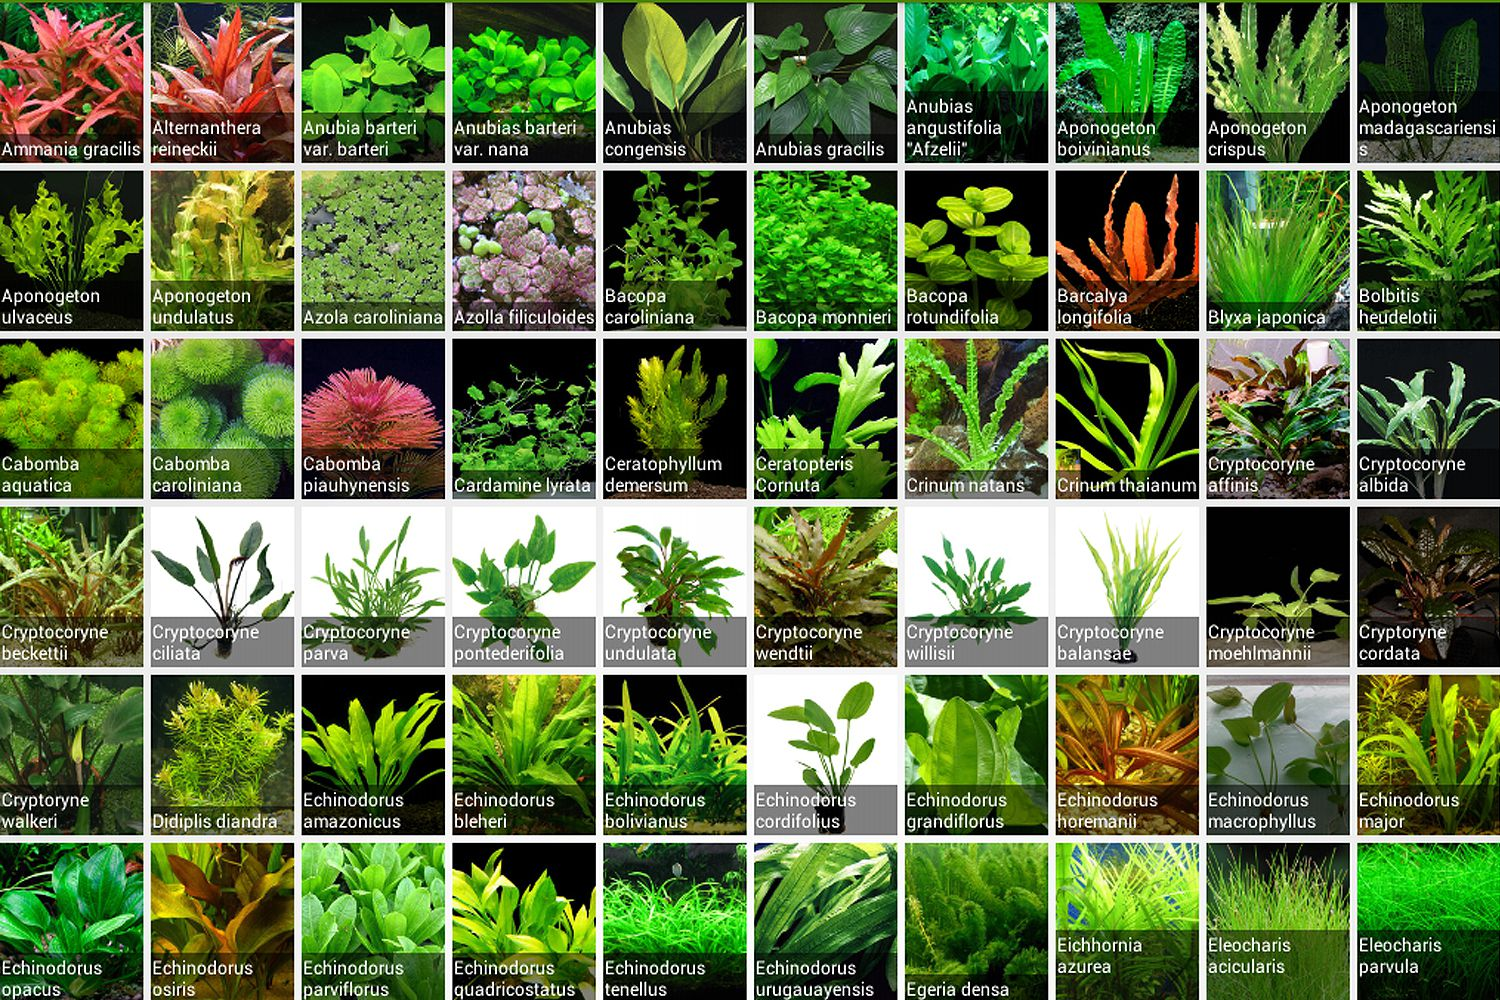 100 plants that need no light 25 indoor plants for low light youtube the complete guide - Indoor water plants list ...